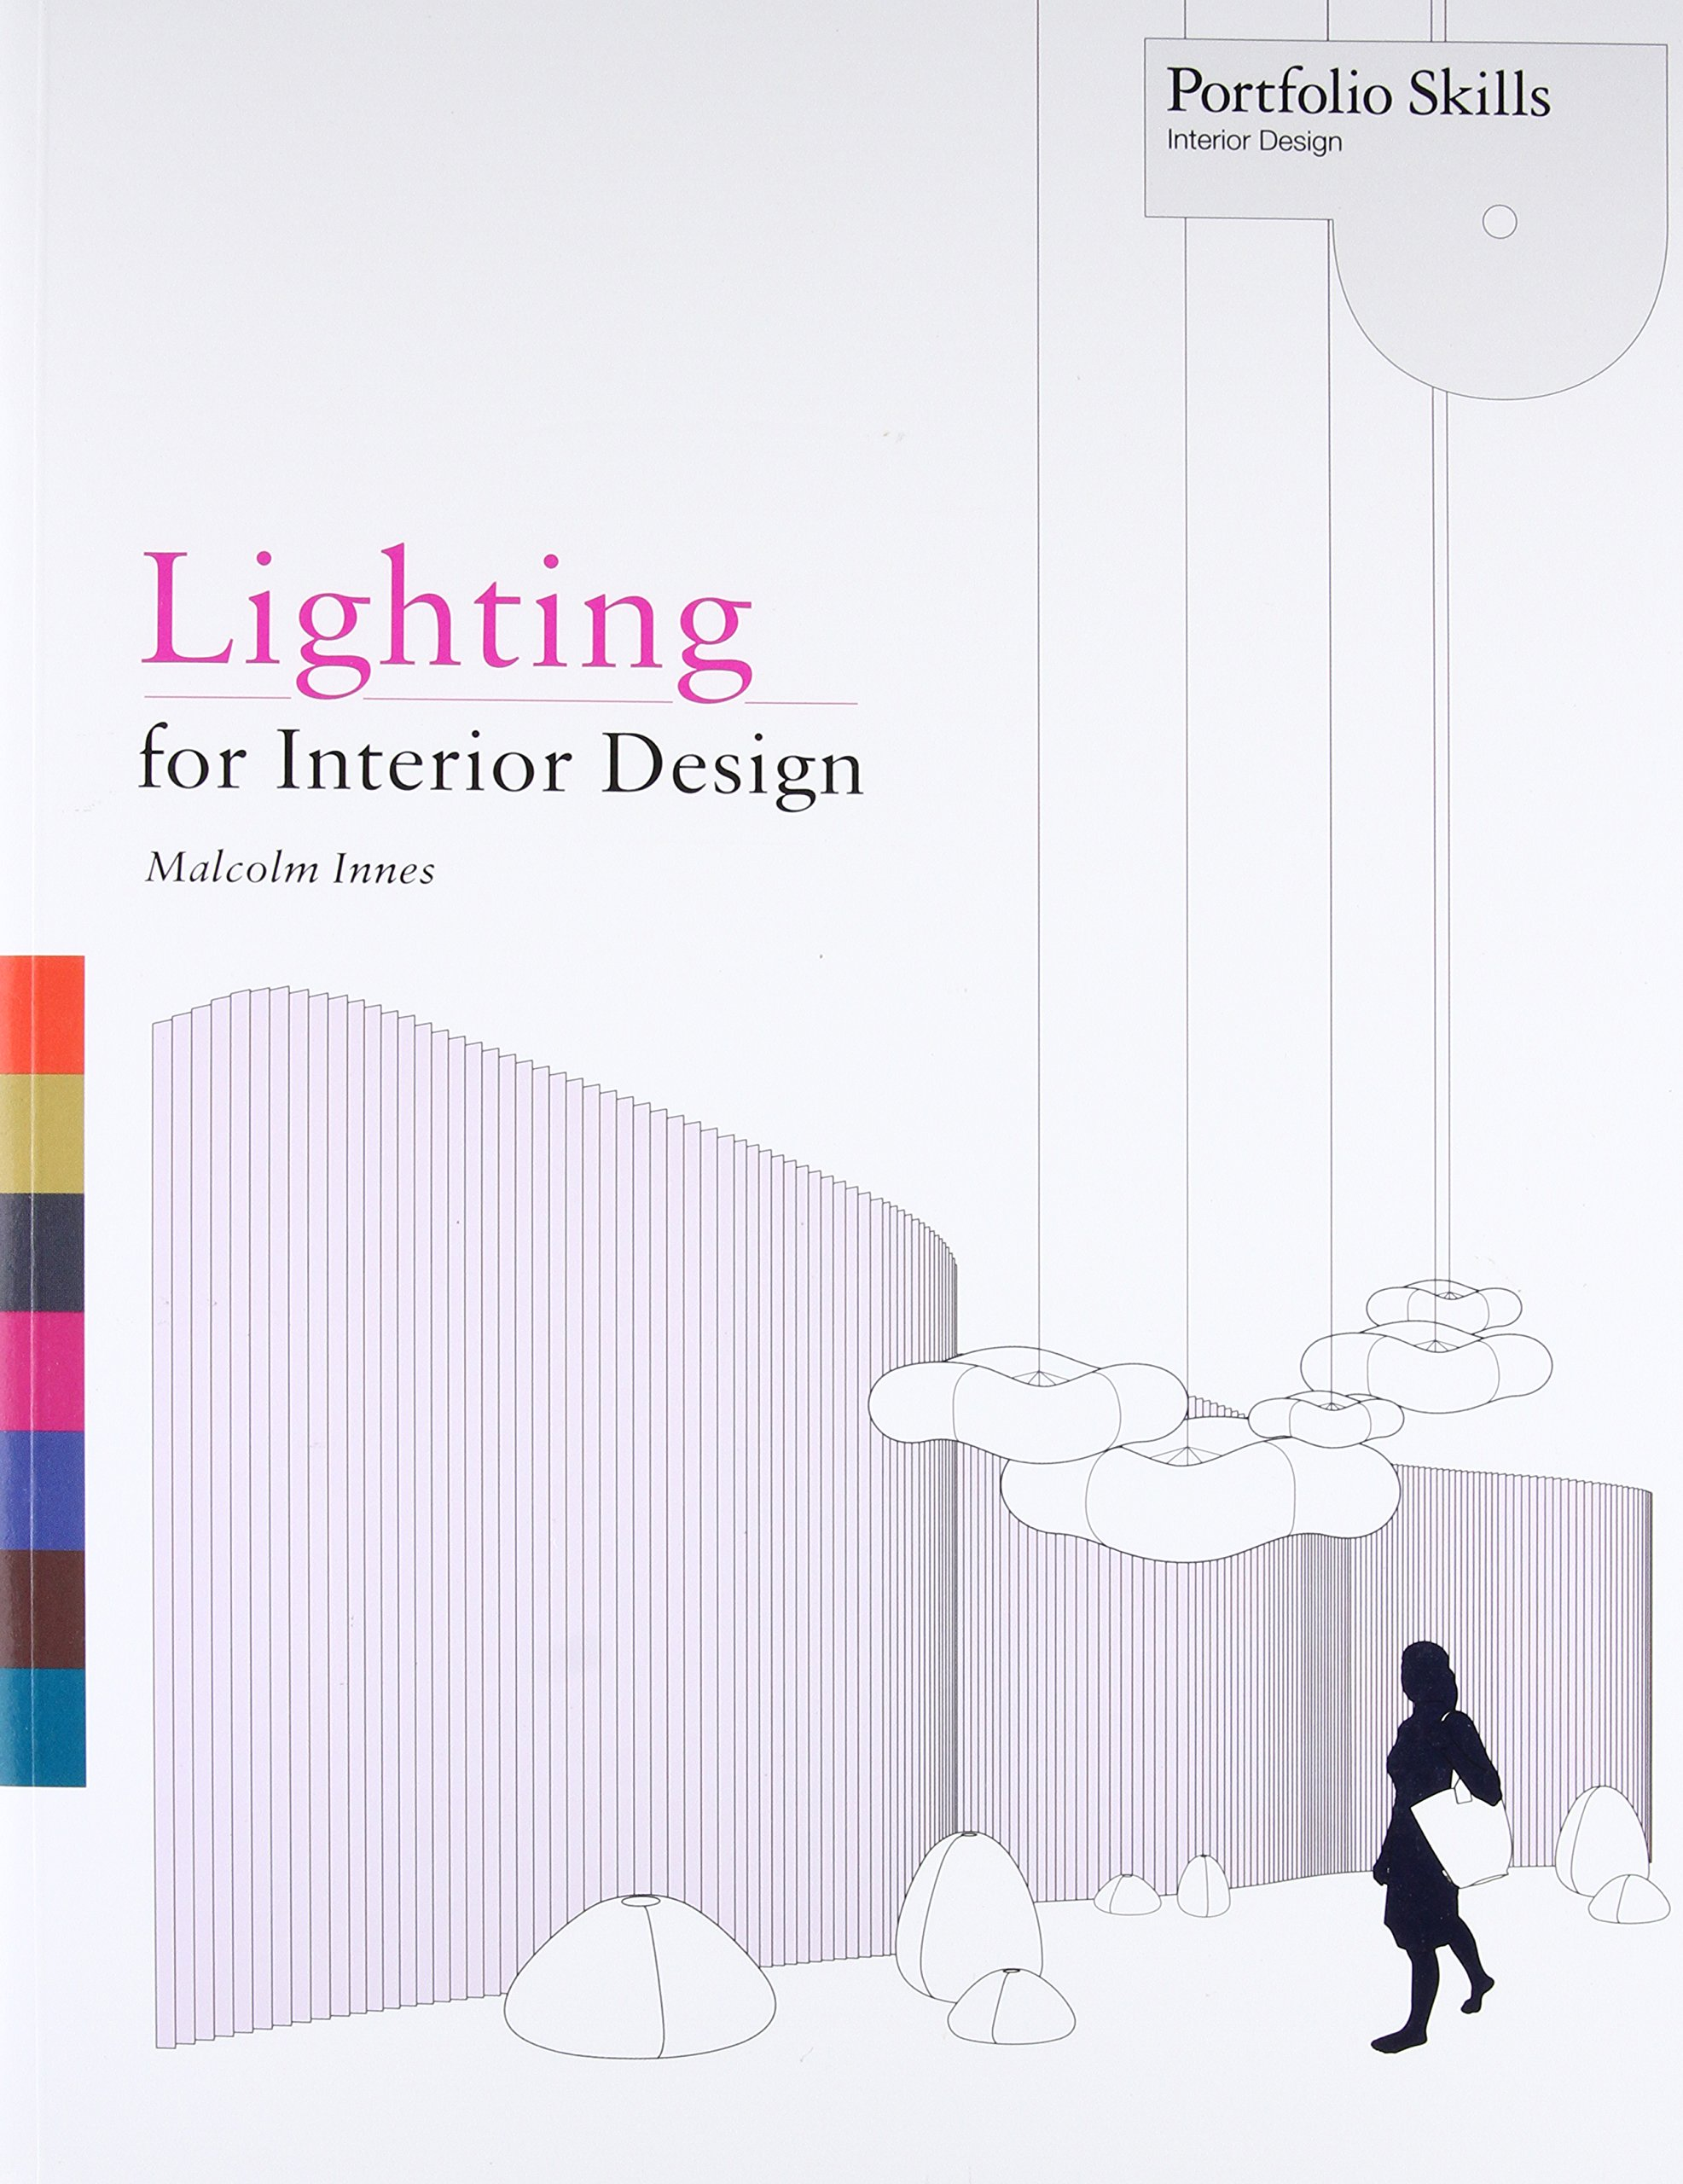 Lighting For Interior Design Portfolio Skills Malcolm Innes 9781856698368 Amazon Books